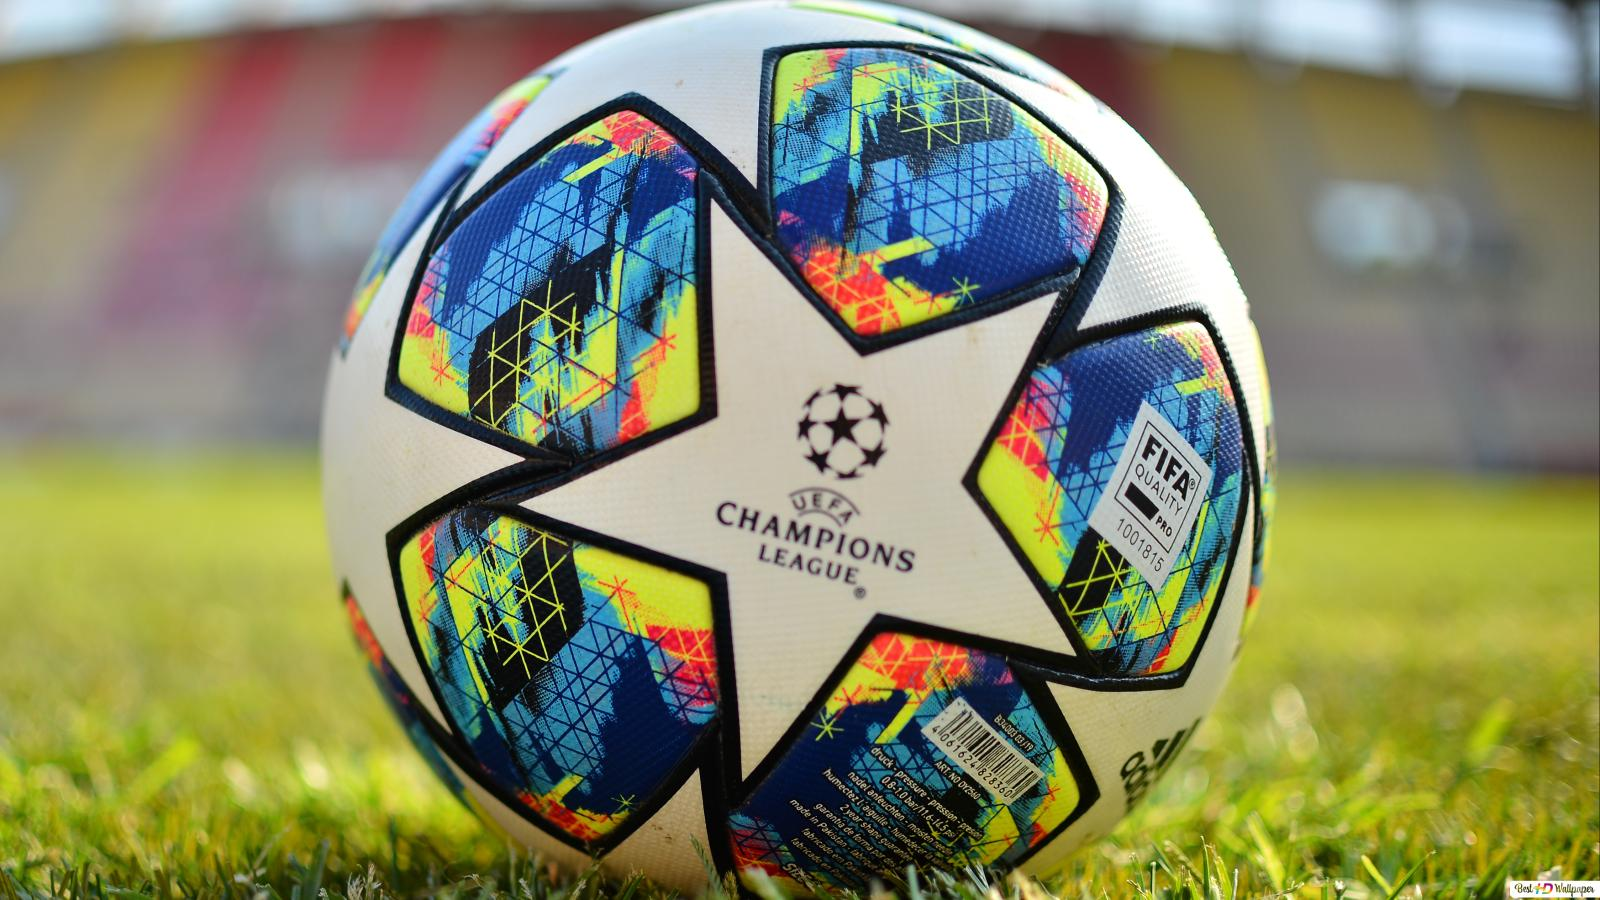 UEFA Champions League 2019 - 2020 Official Ball close up HD wallpaper  download